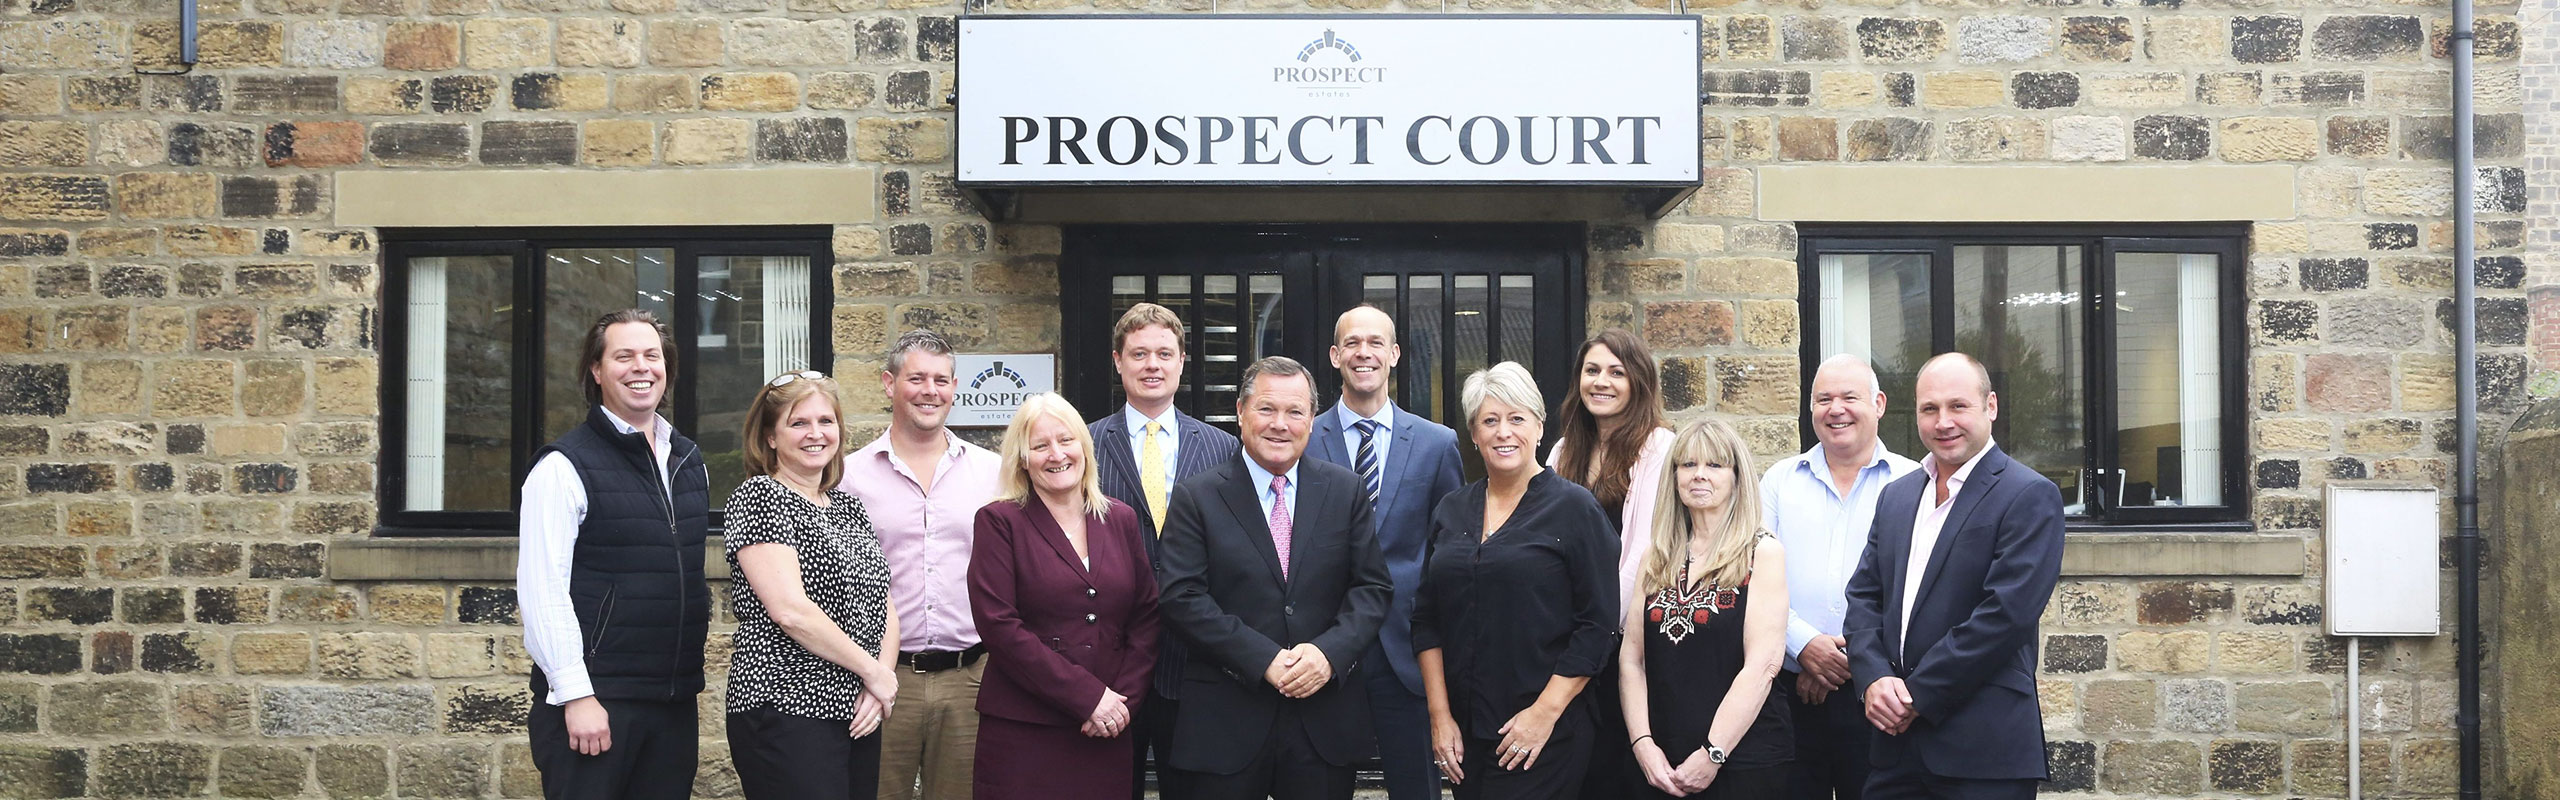 About Prospect Estates